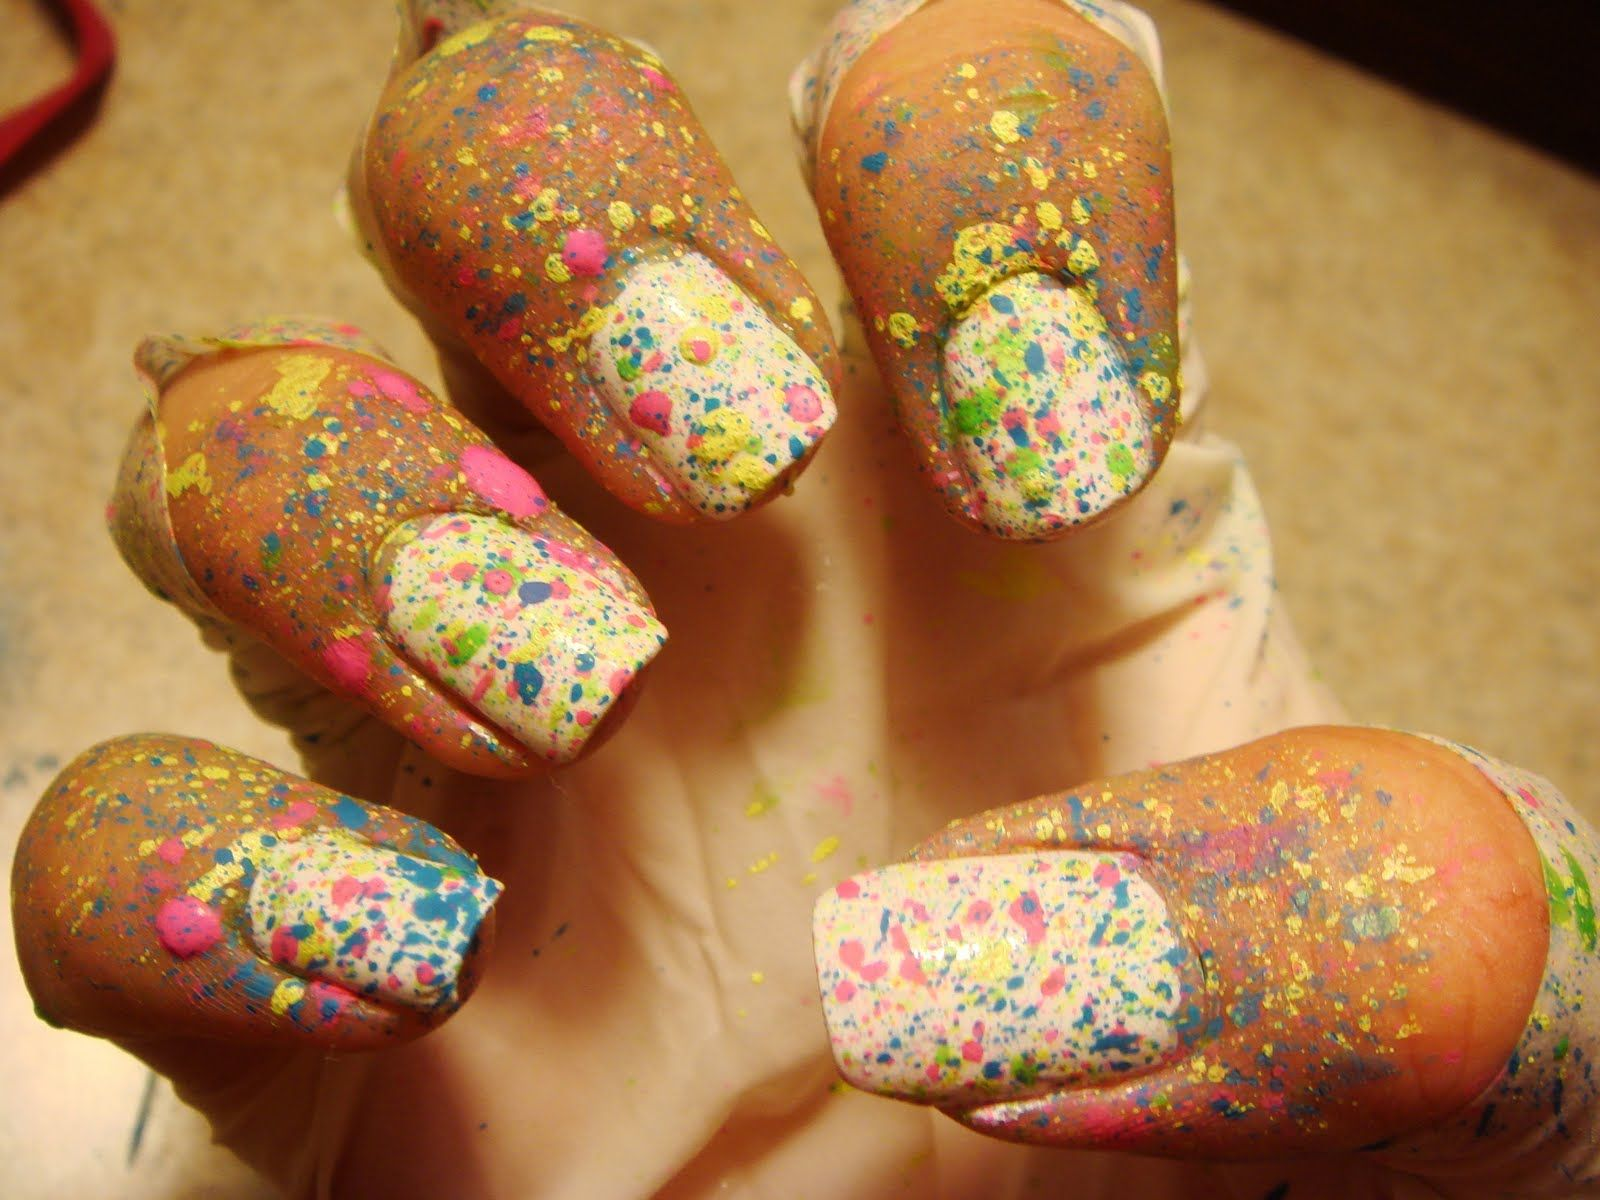 Paint splatter nails is it weird i like the paint on the skin paint splatter nails is it weird i like the paint on the skin prinsesfo Choice Image